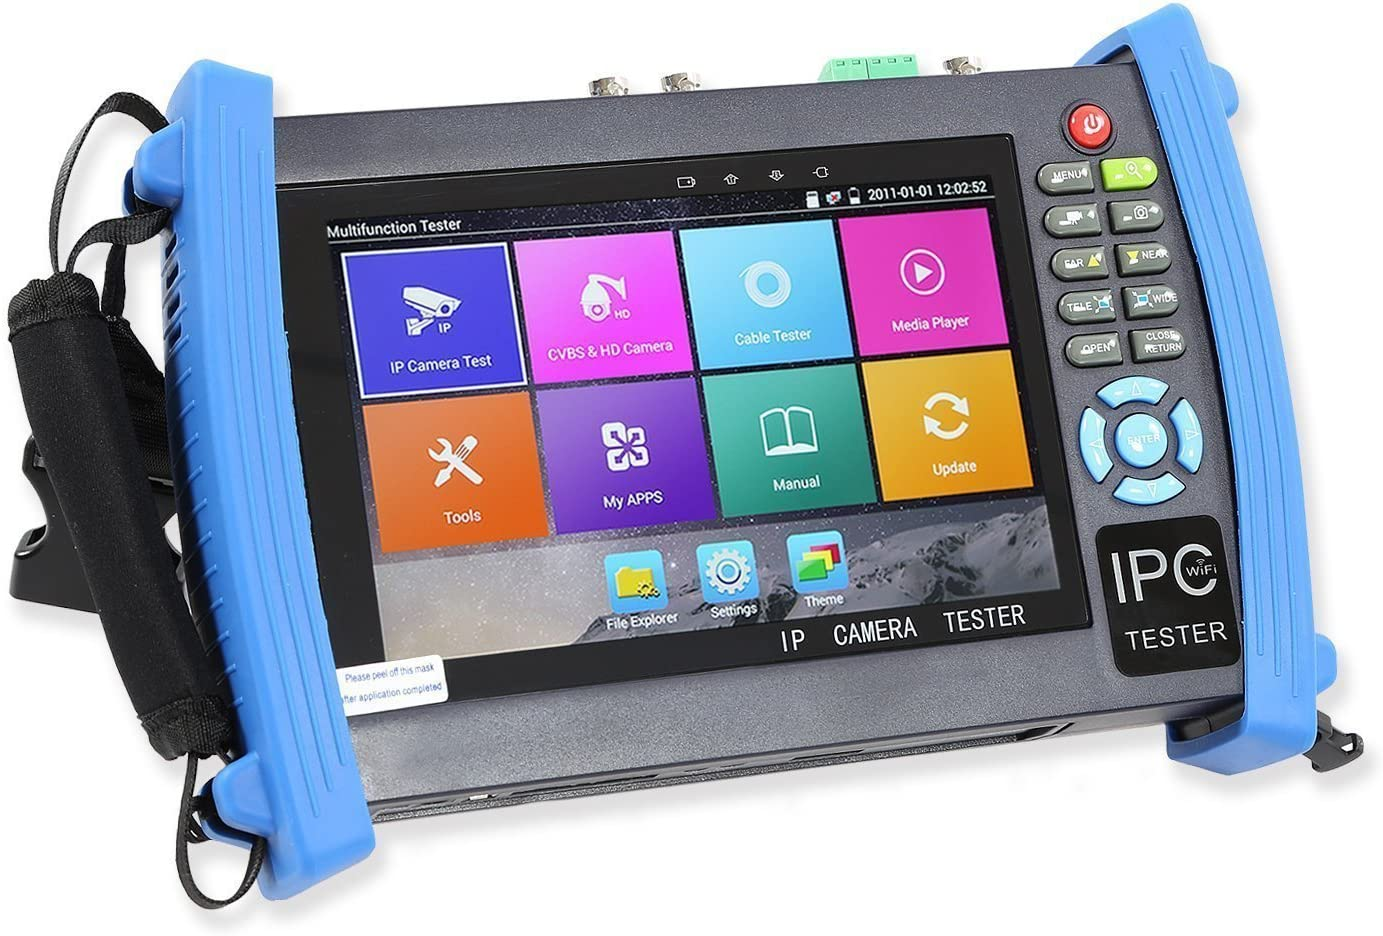 Wsdcam 7 Inch All in One 1080p Retina Display IP Camera Tester Security CCTV Tester Monitor with SDI//TVI//AHD//CVI//POE//WIFI//4K H.265//HDMI in/&Out//RJ45-TDR//Firmware Update Upgraded 8600ADHS-Plus